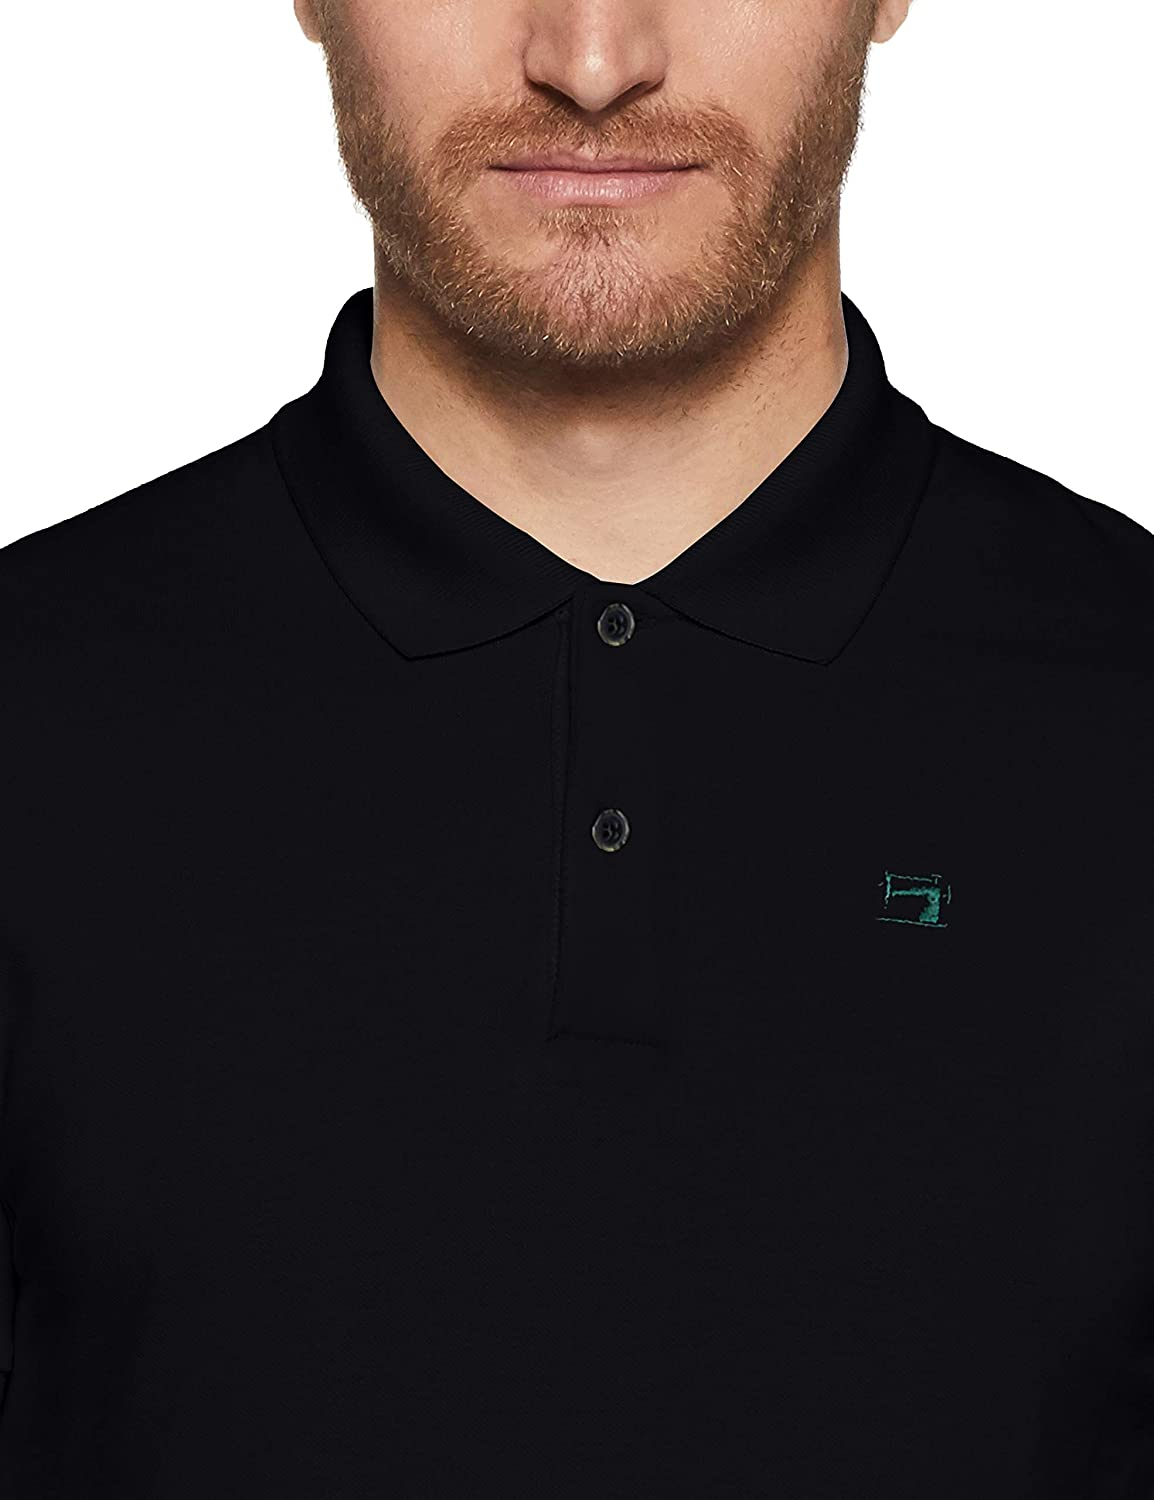 Scotch /& Soda Nos Classic Polo In Pique Quality with Clean Outlook Hombre